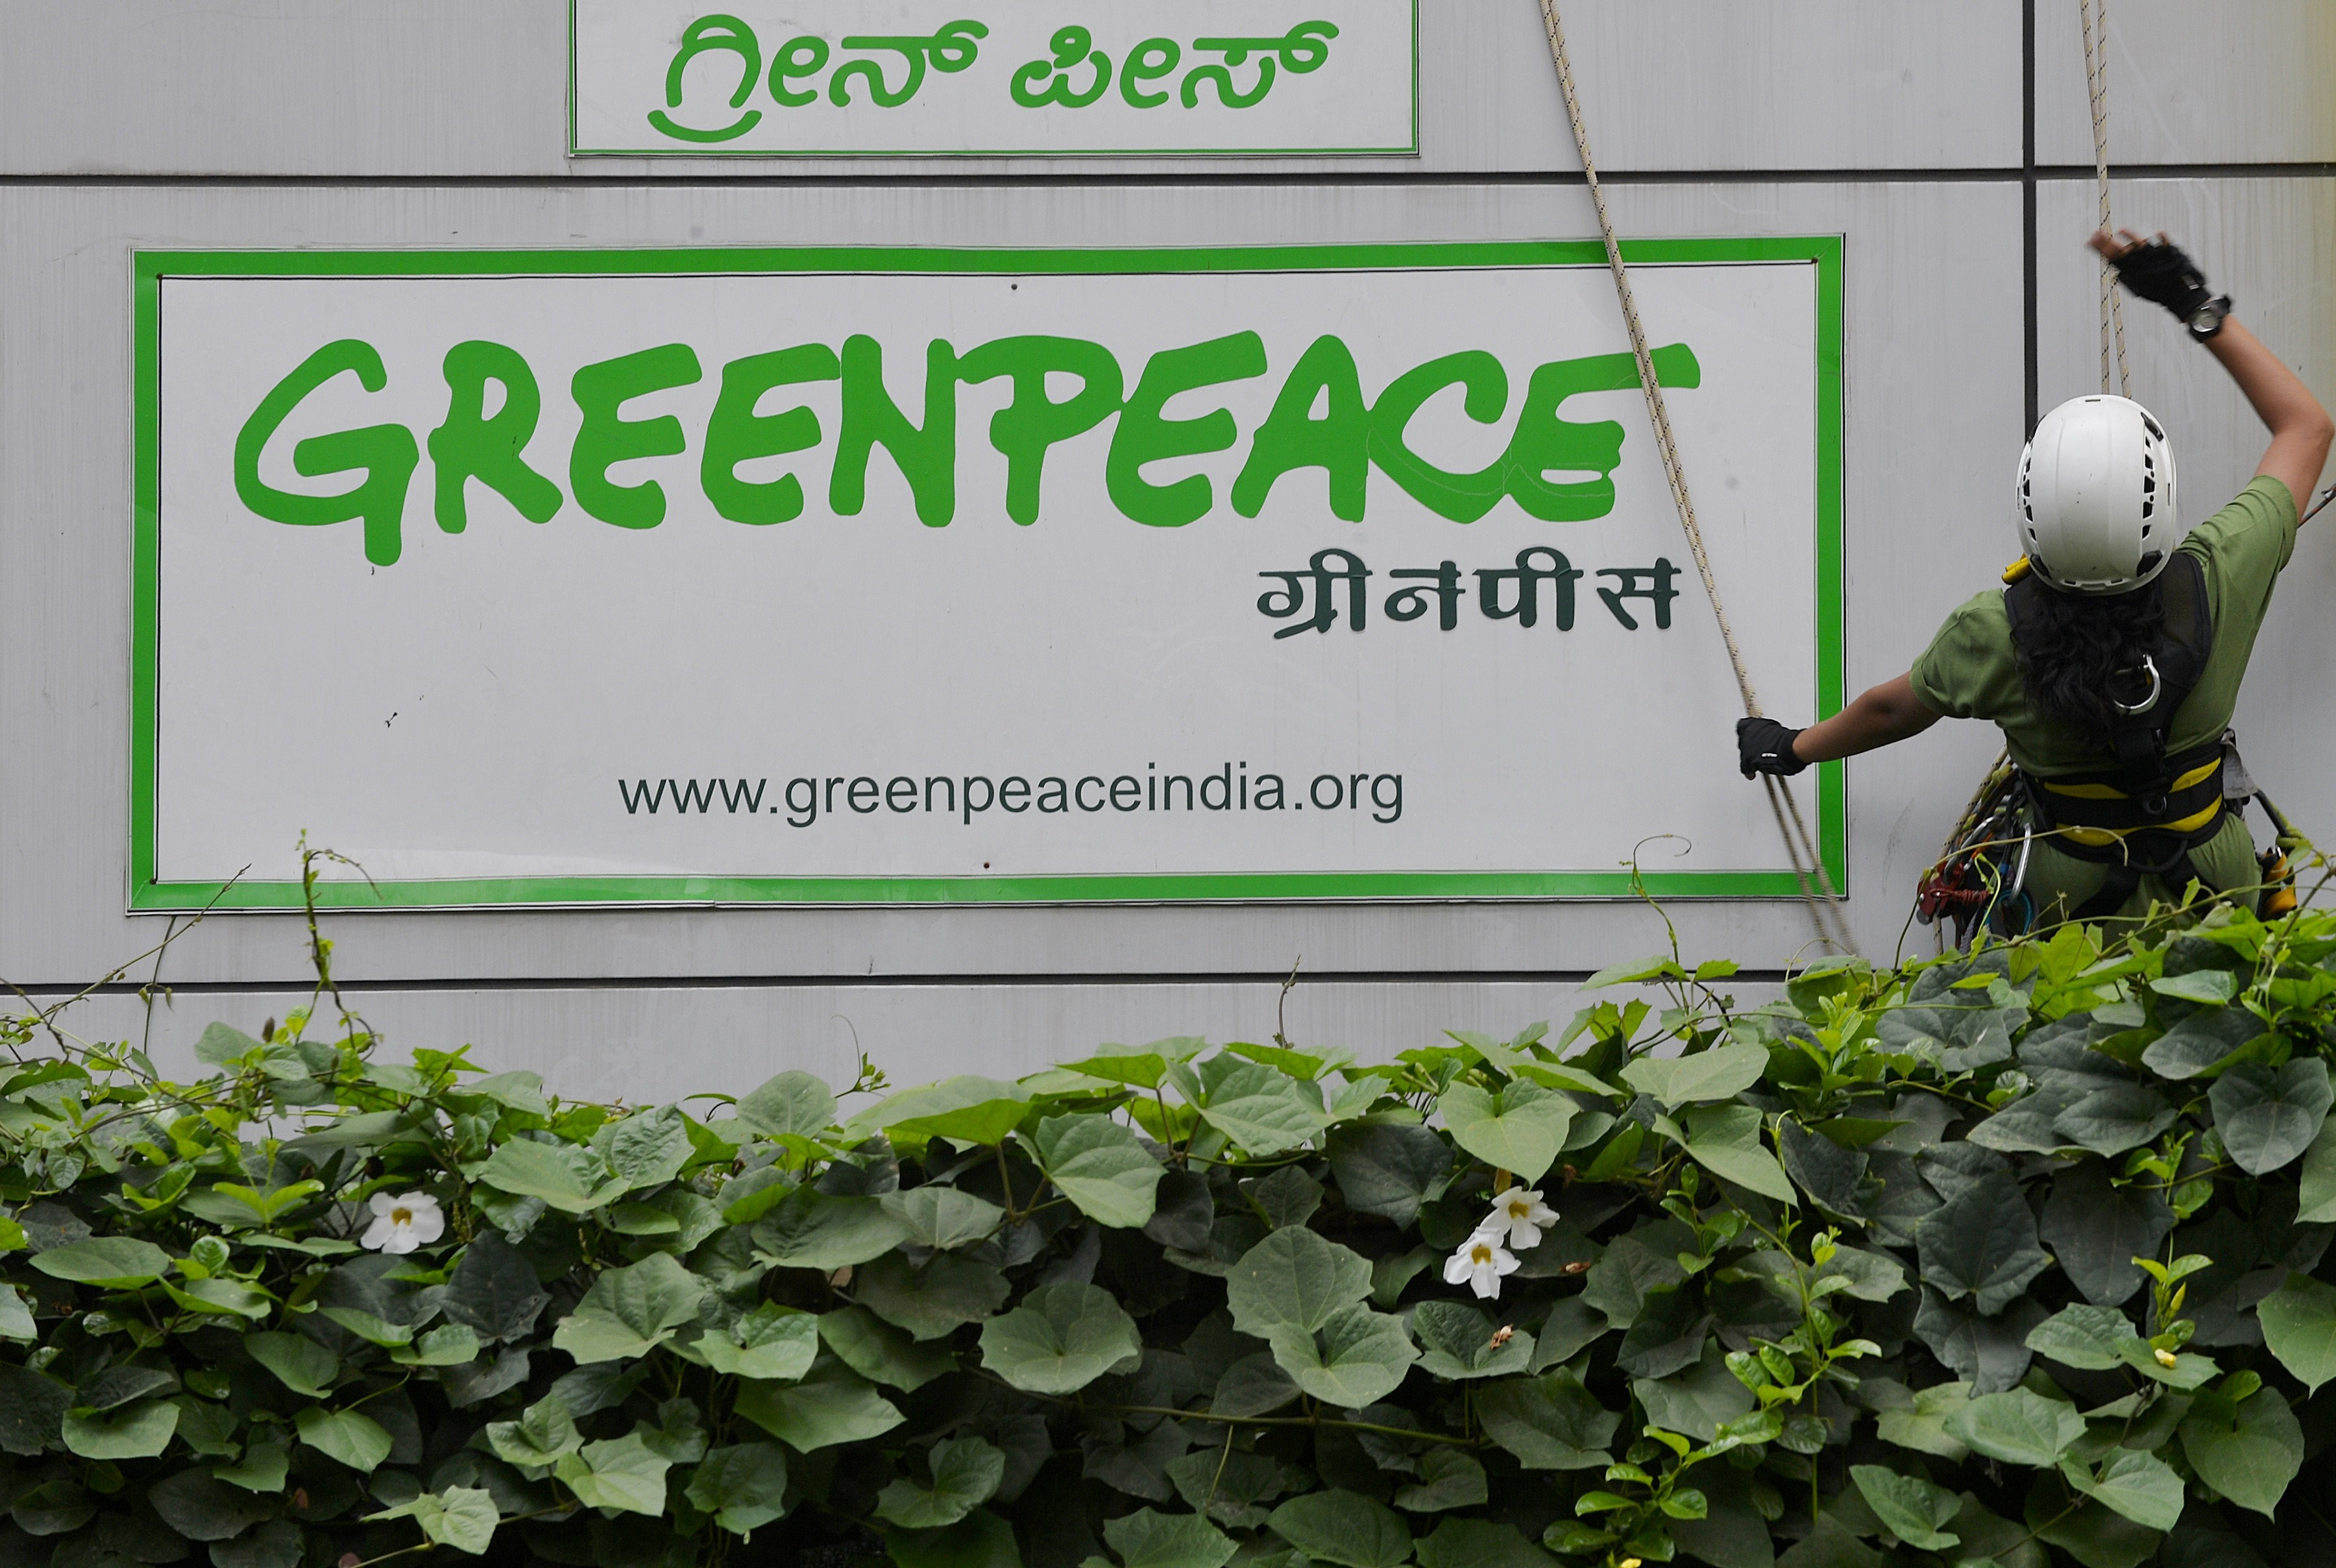 Activists of GreenPeace rappell down the office building where they are headquartered to unfurl banners 'democracy' and 'freespeech' in Bangalore on May 15, 2015.